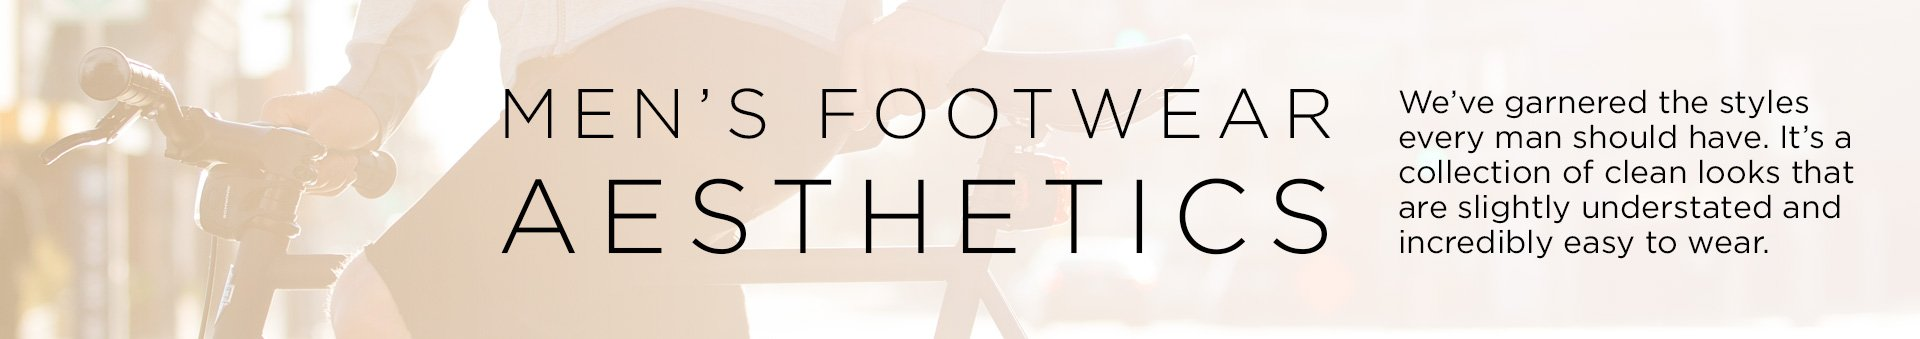 Header: Men's Footwear Aesthetics